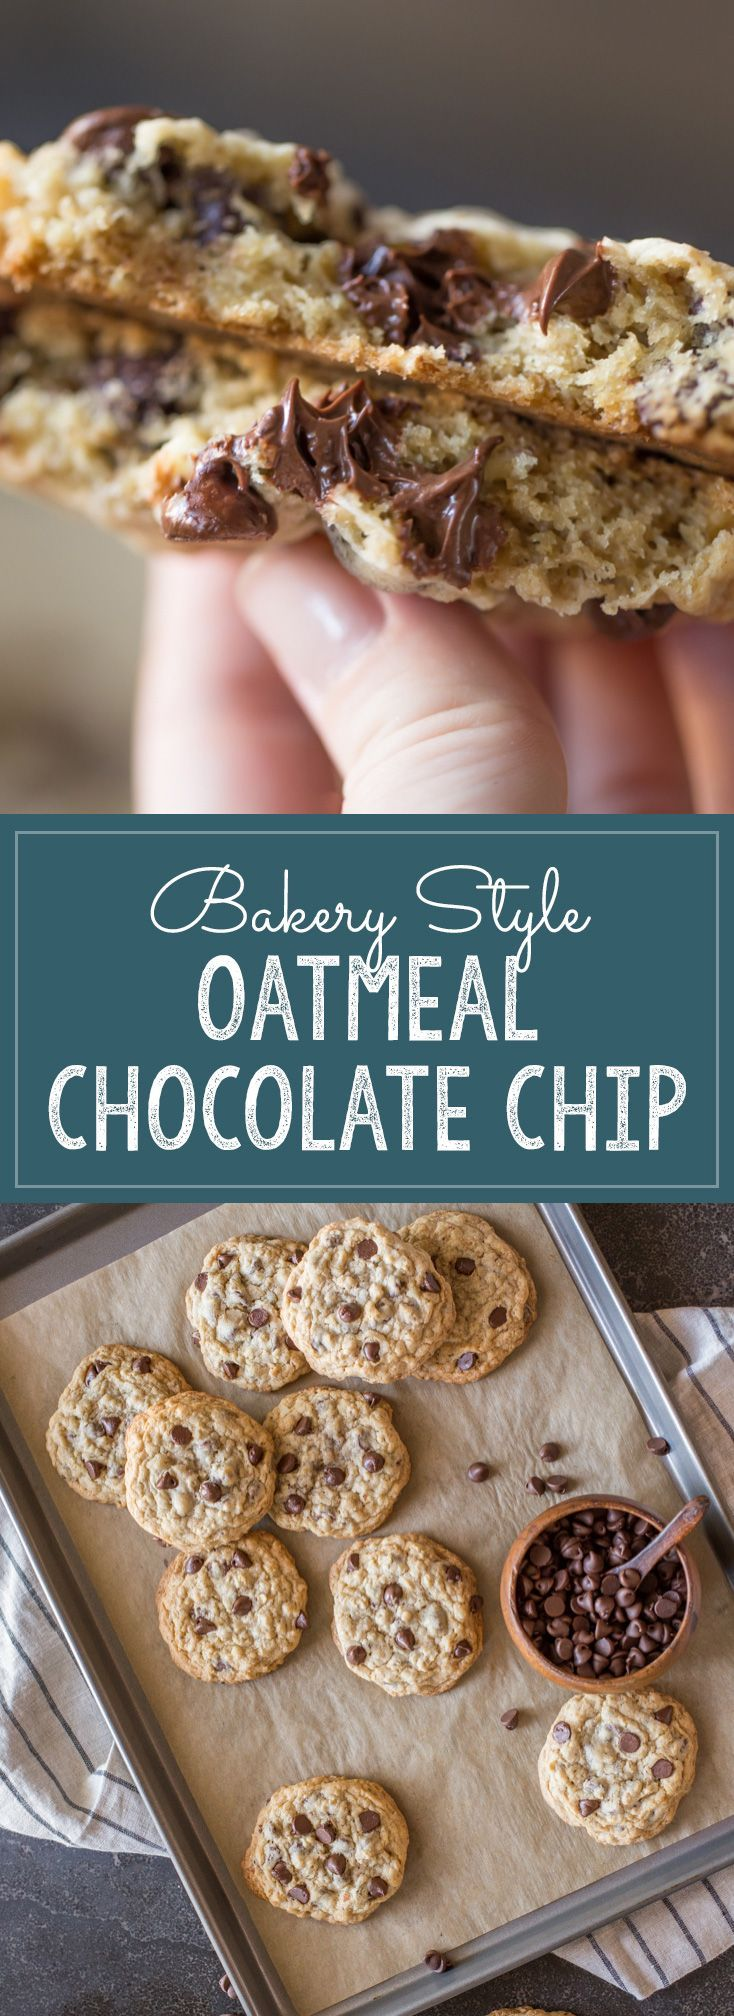 Big, thick, soft chewy Oatmeal Chocolate Chip Cookies